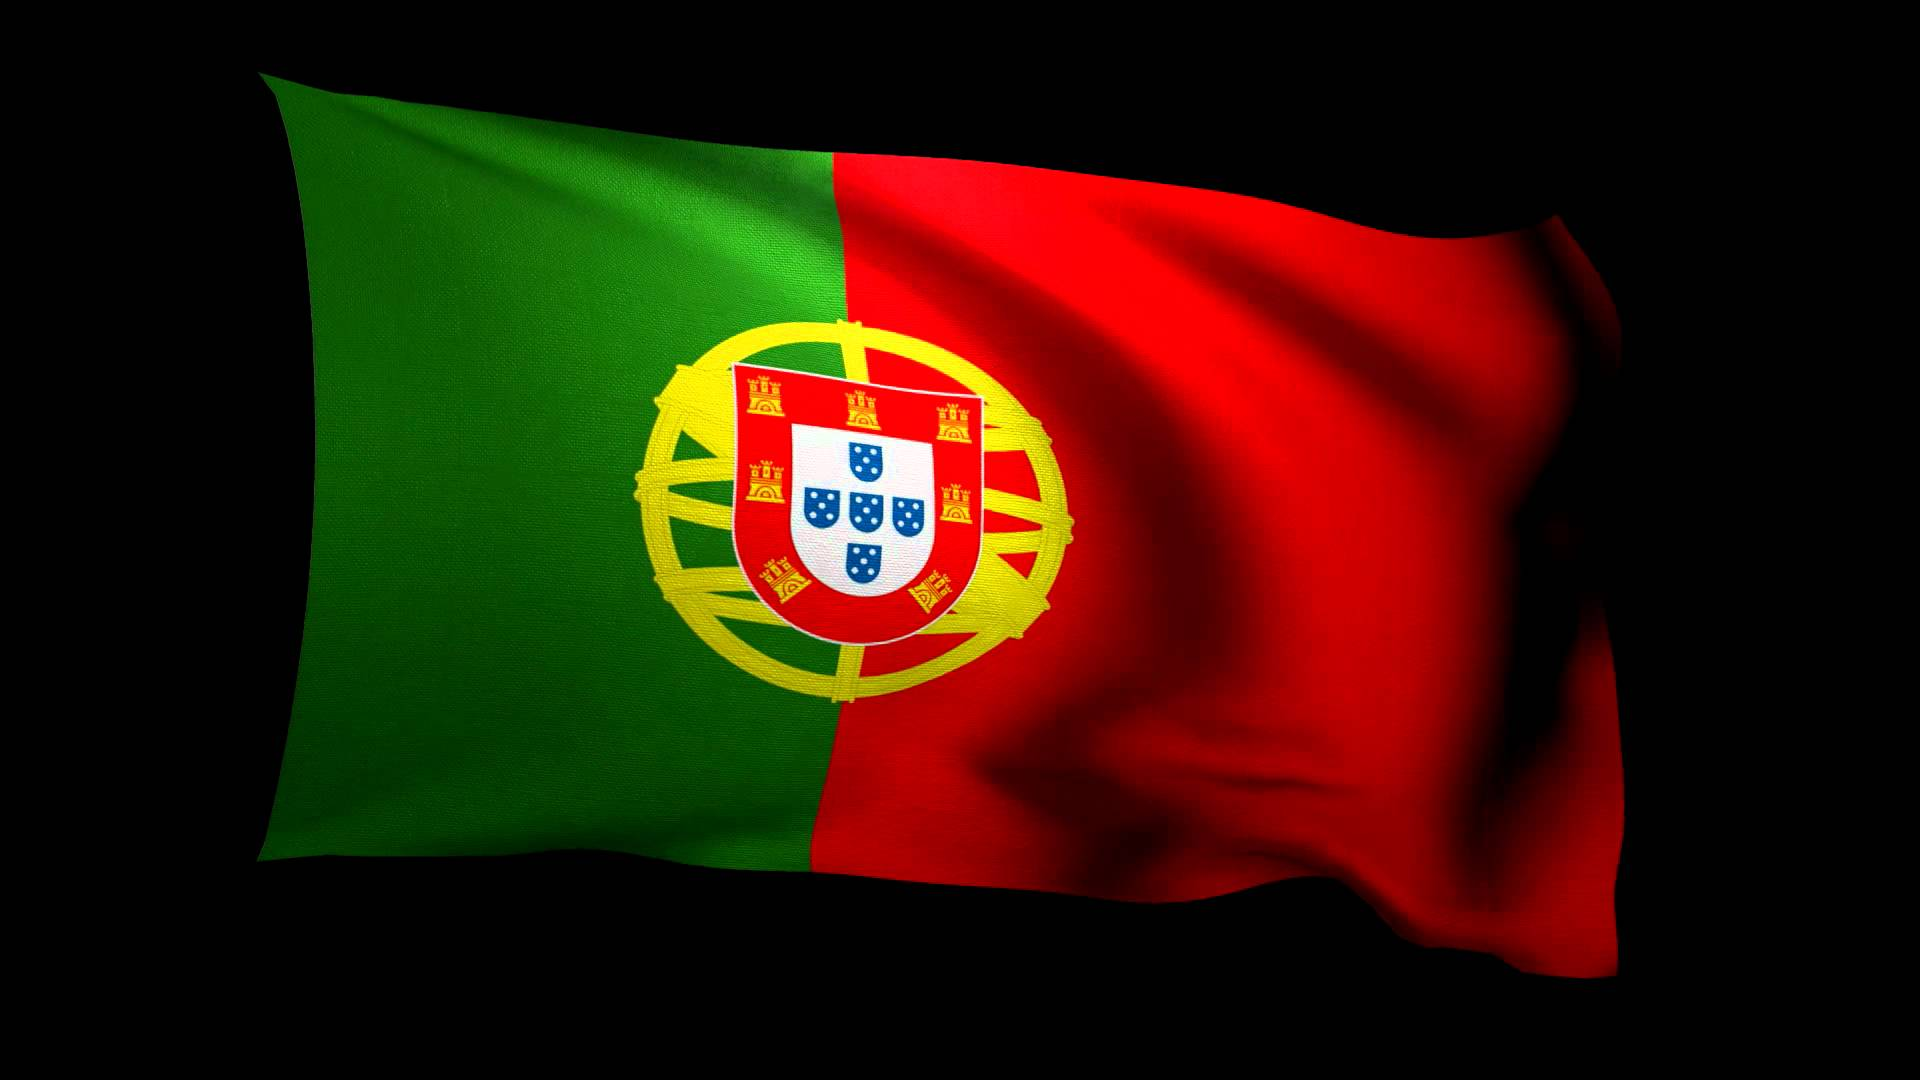 Flag Of Portugal wallpapers, Misc, HQ Flag Of Portugal pictures | 4K  Wallpapers 2019